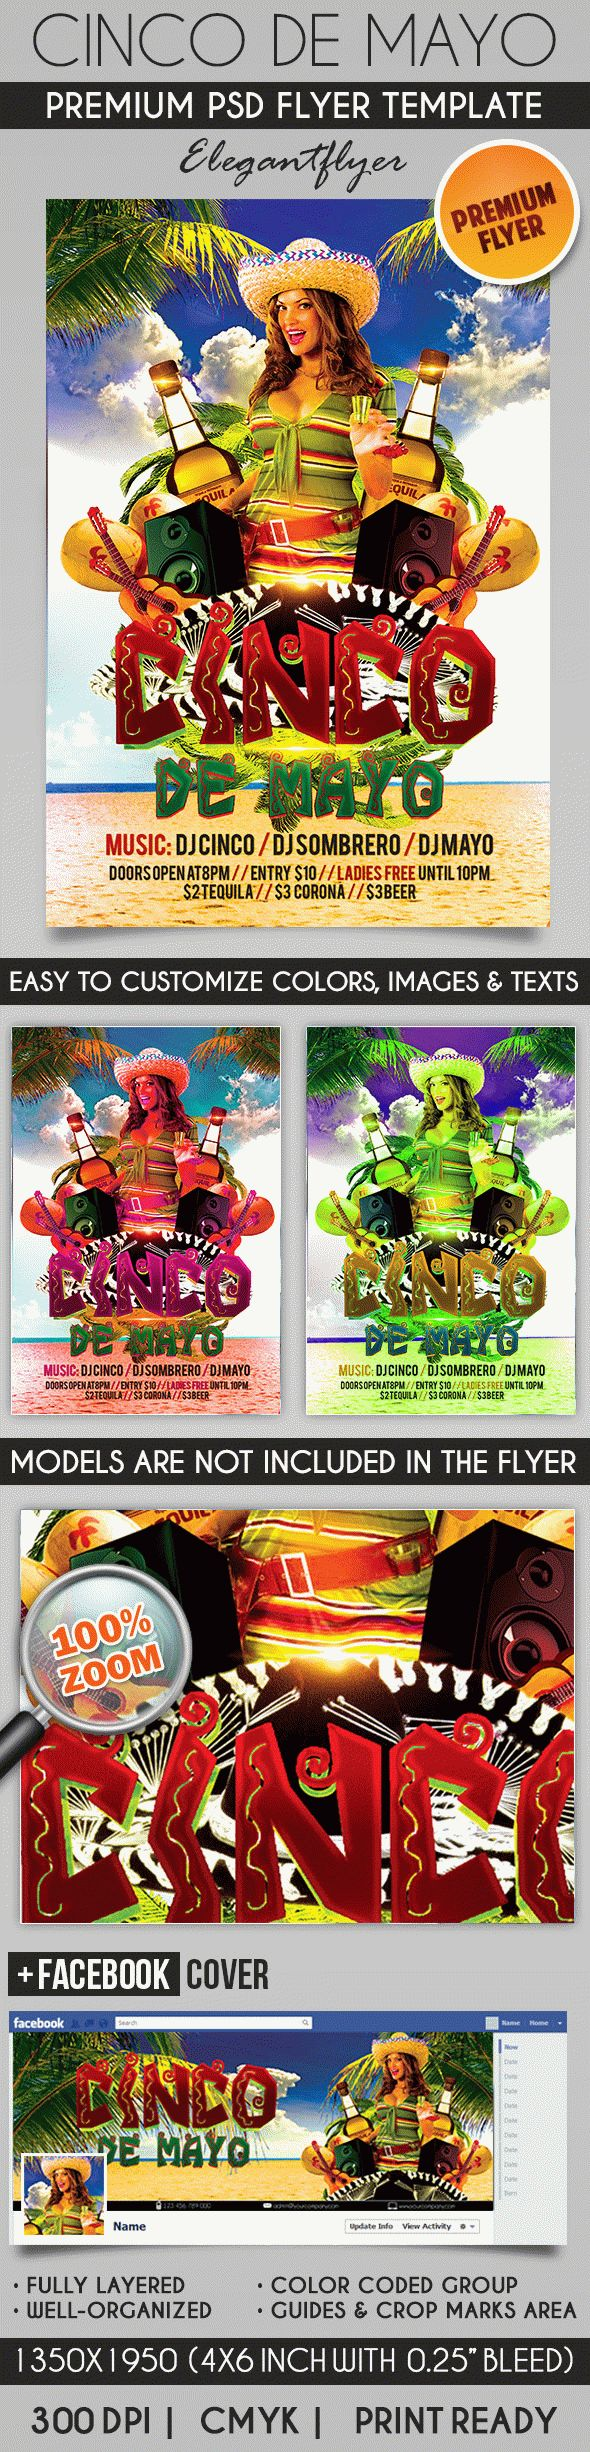 Cinco De Mayo Celebration Flyer in PSD